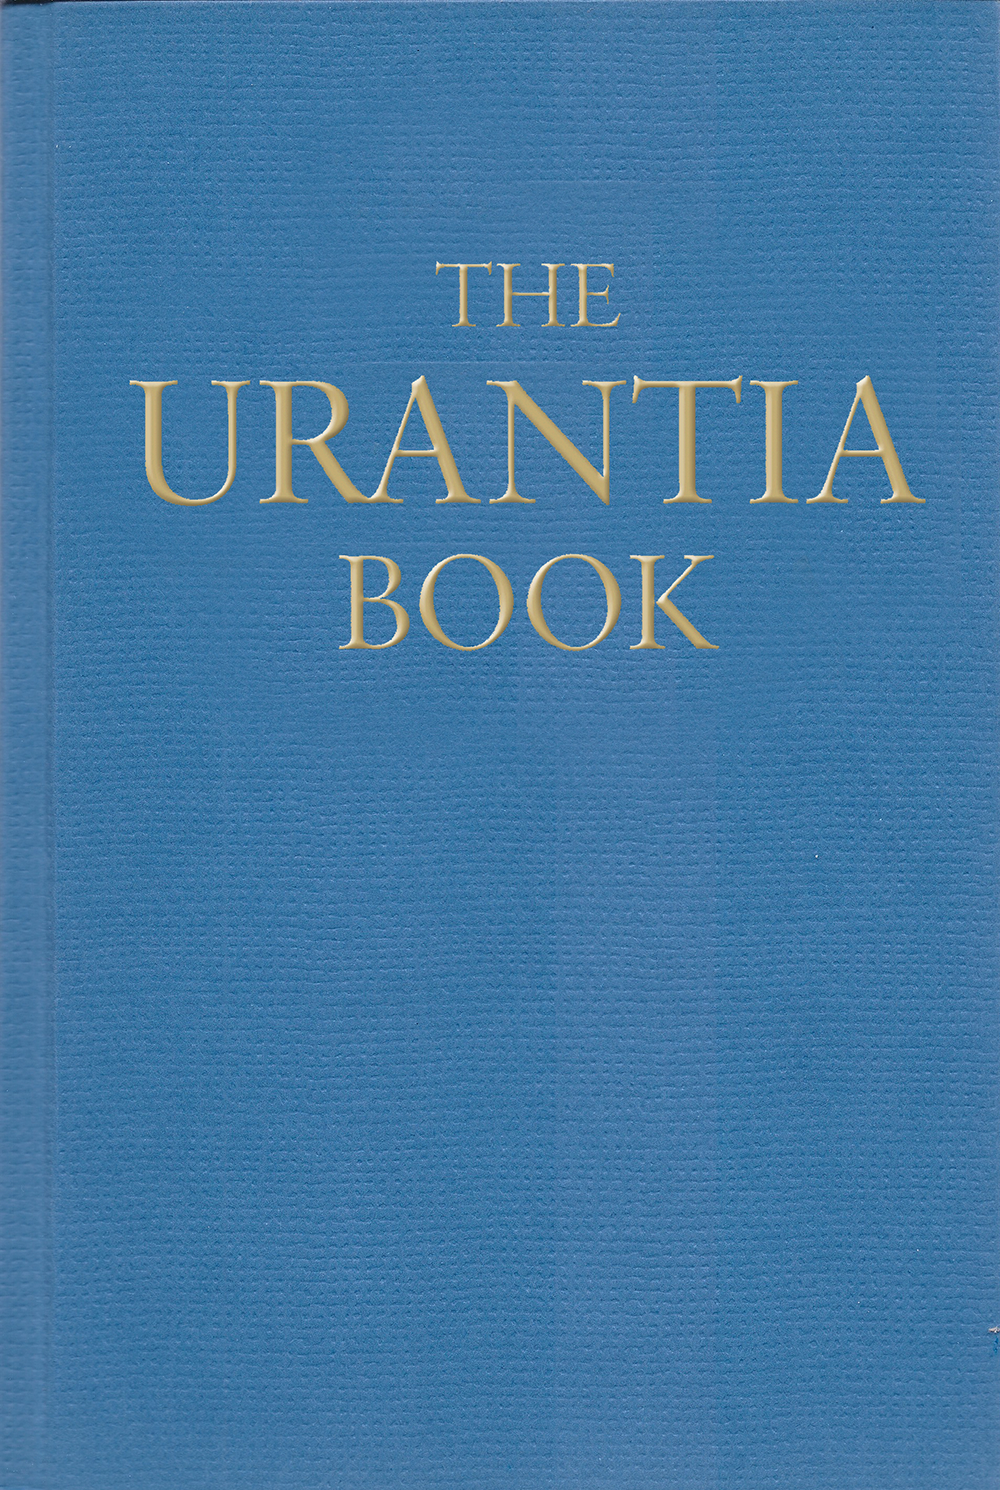 2013 The Urantia Book - Big Blue without jacket